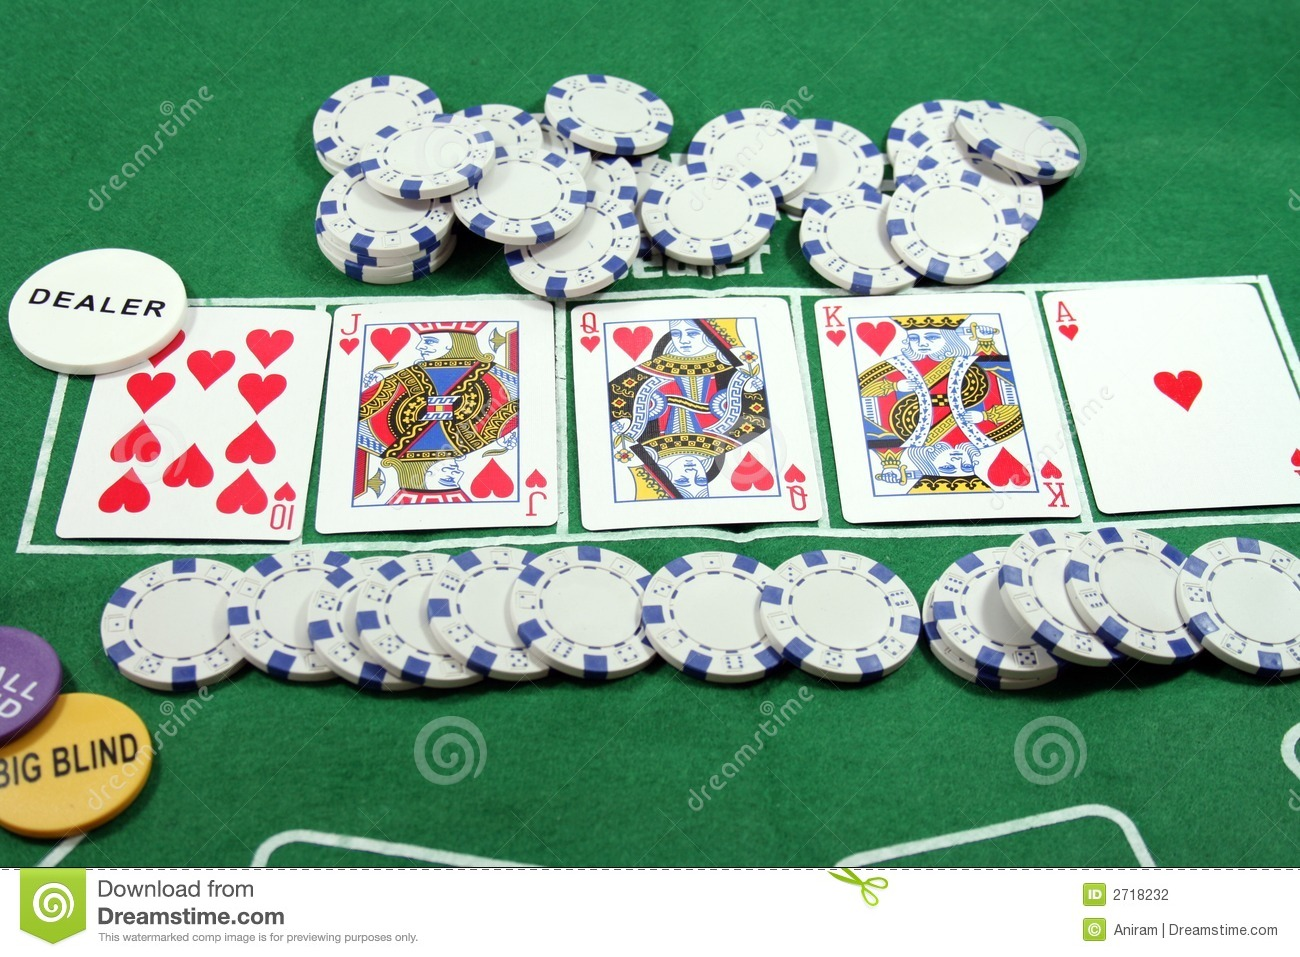 Poker game stock photo. Image of colour, green, betting ...